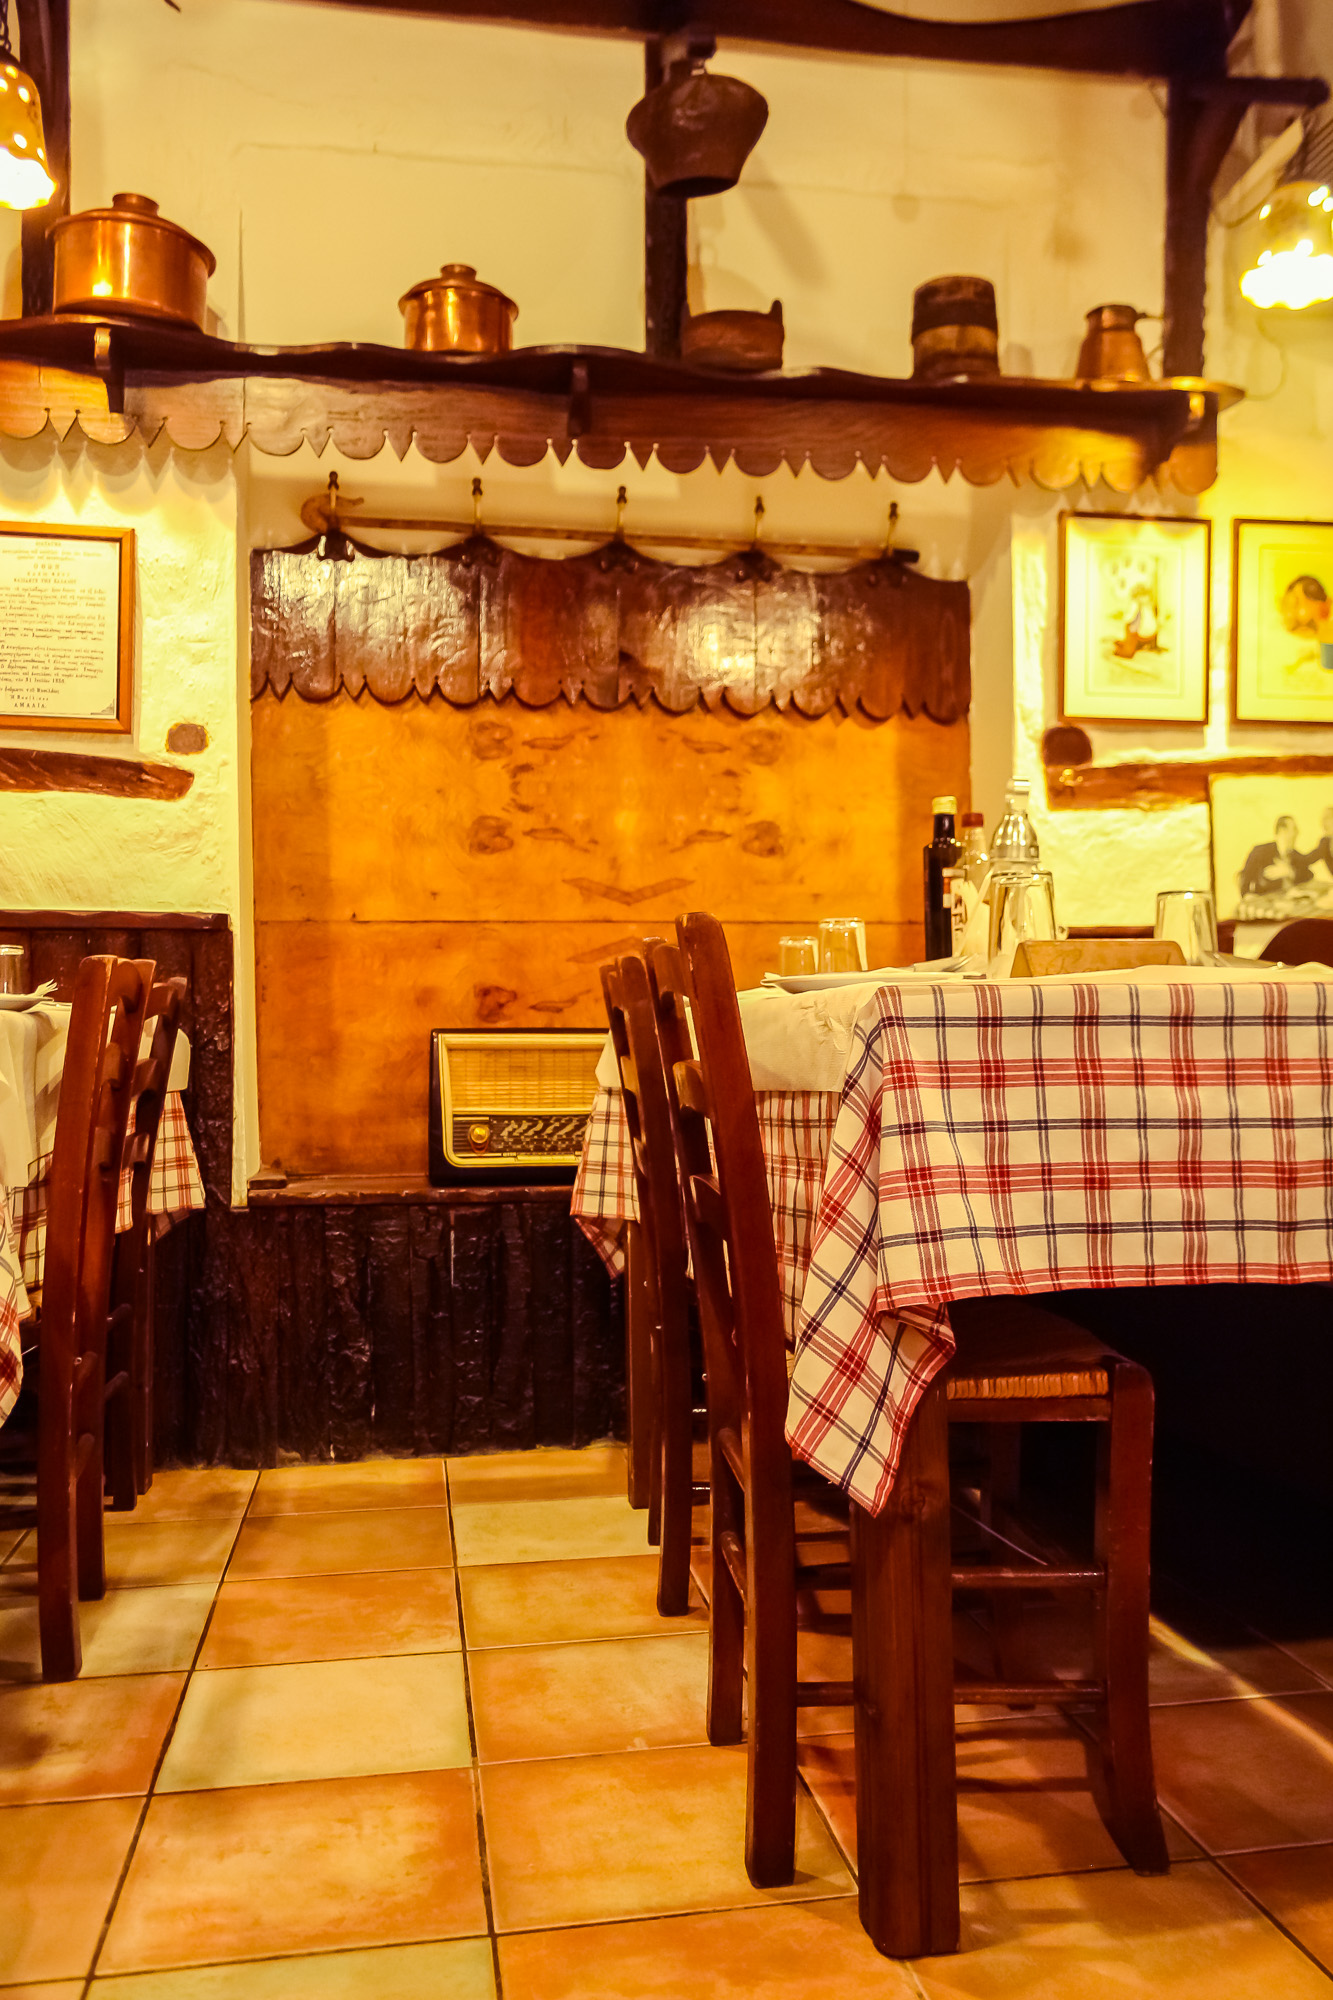 www.stemajourneys.com-tried-and-tested-omorfo-tavernaki-nafplio-46.jpg